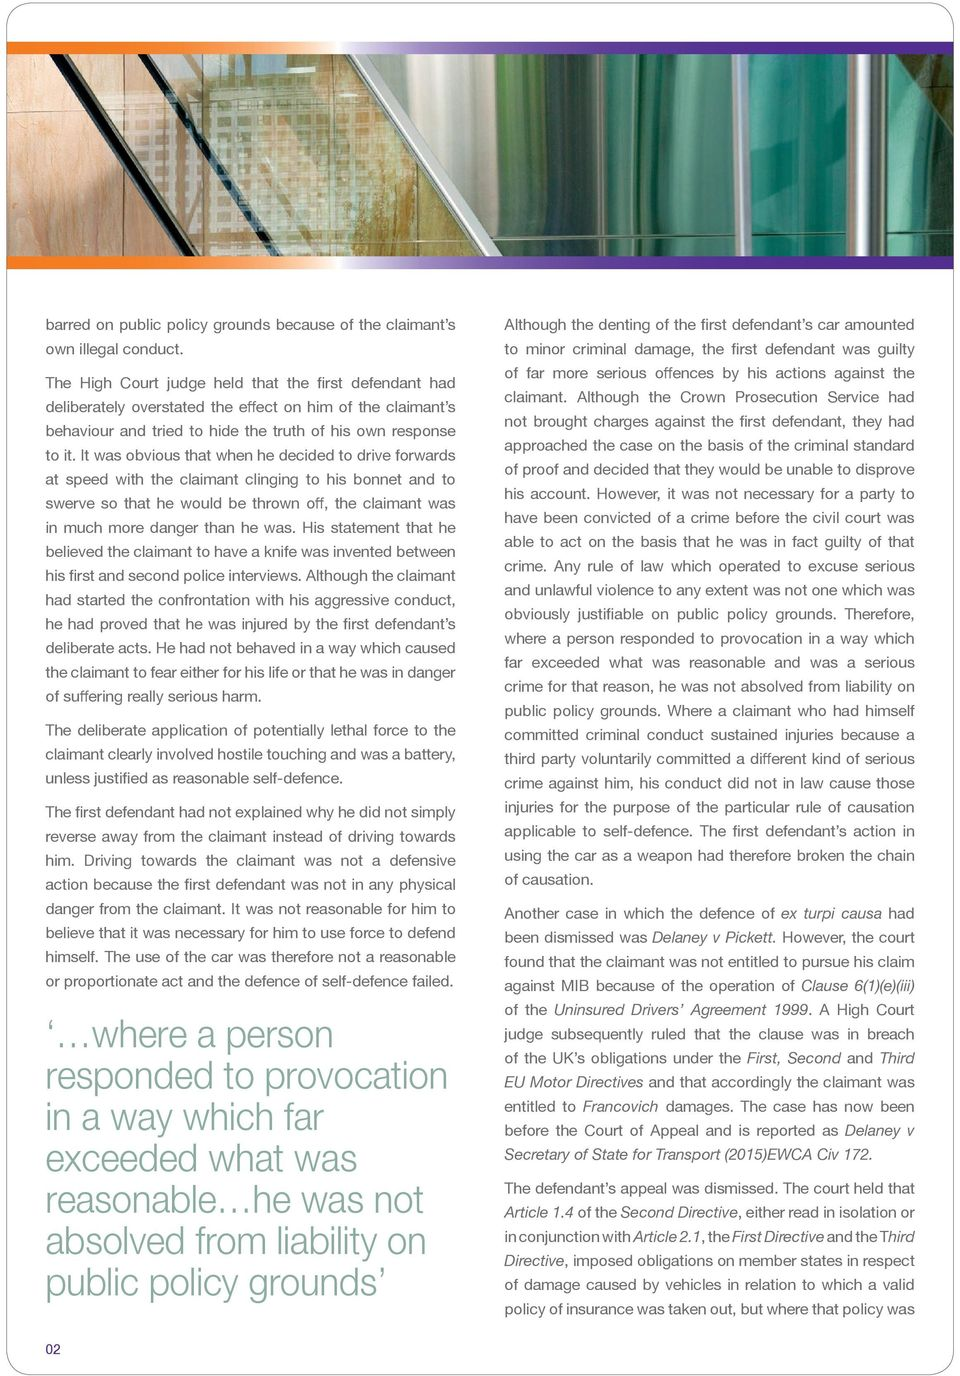 It was obvious that when he decided to drive forwards at speed with the claimant clinging to his bonnet and to swerve so that he would be thrown off, the claimant was in much more danger than he was.